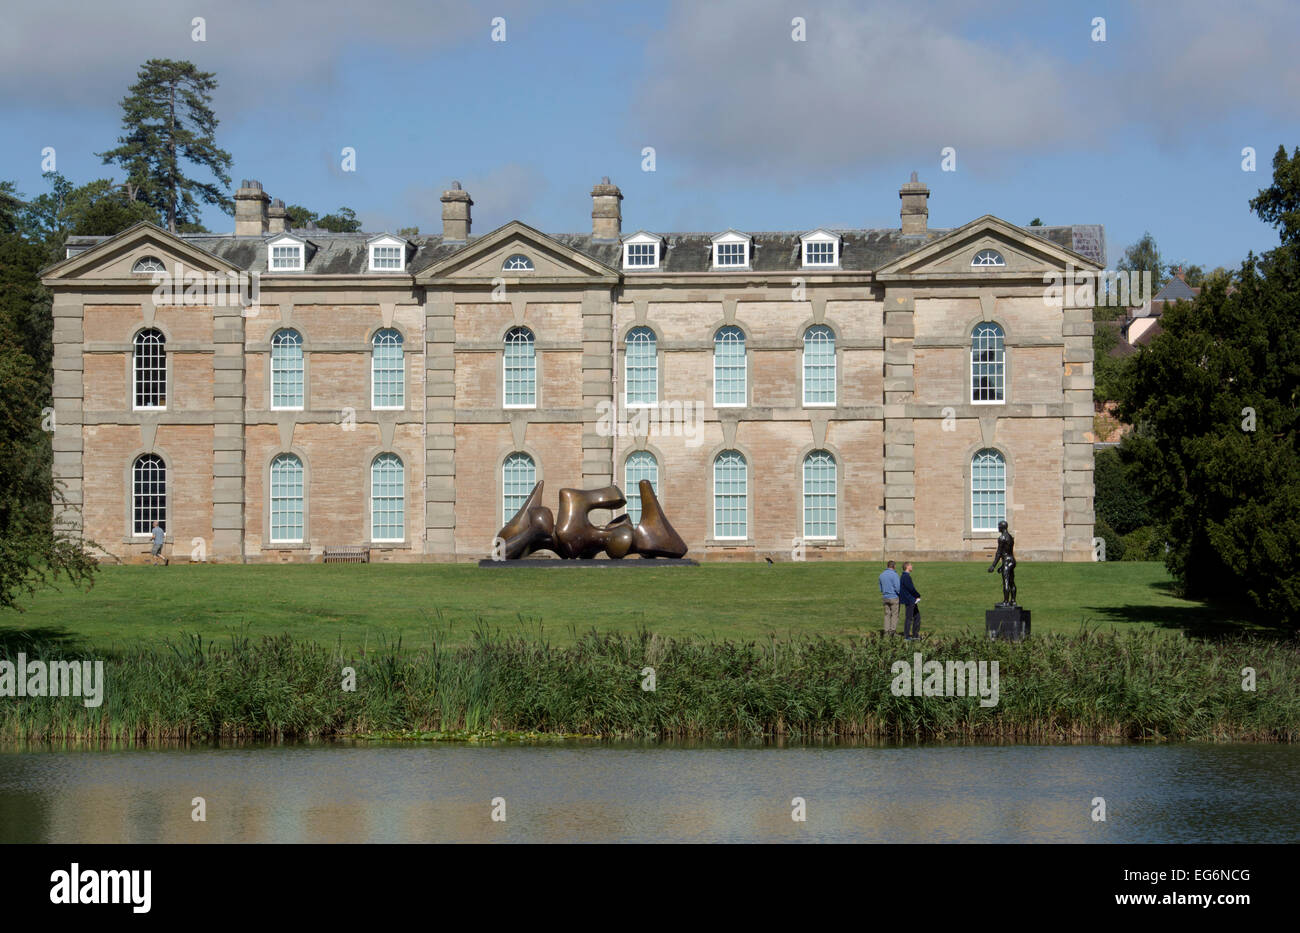 WARWICKSHIRE; COMPTON  VERNEY HOUSE WITH HENRY MOORE'S 3-PIECE SCULPTURE IN F.G. - Stock Image